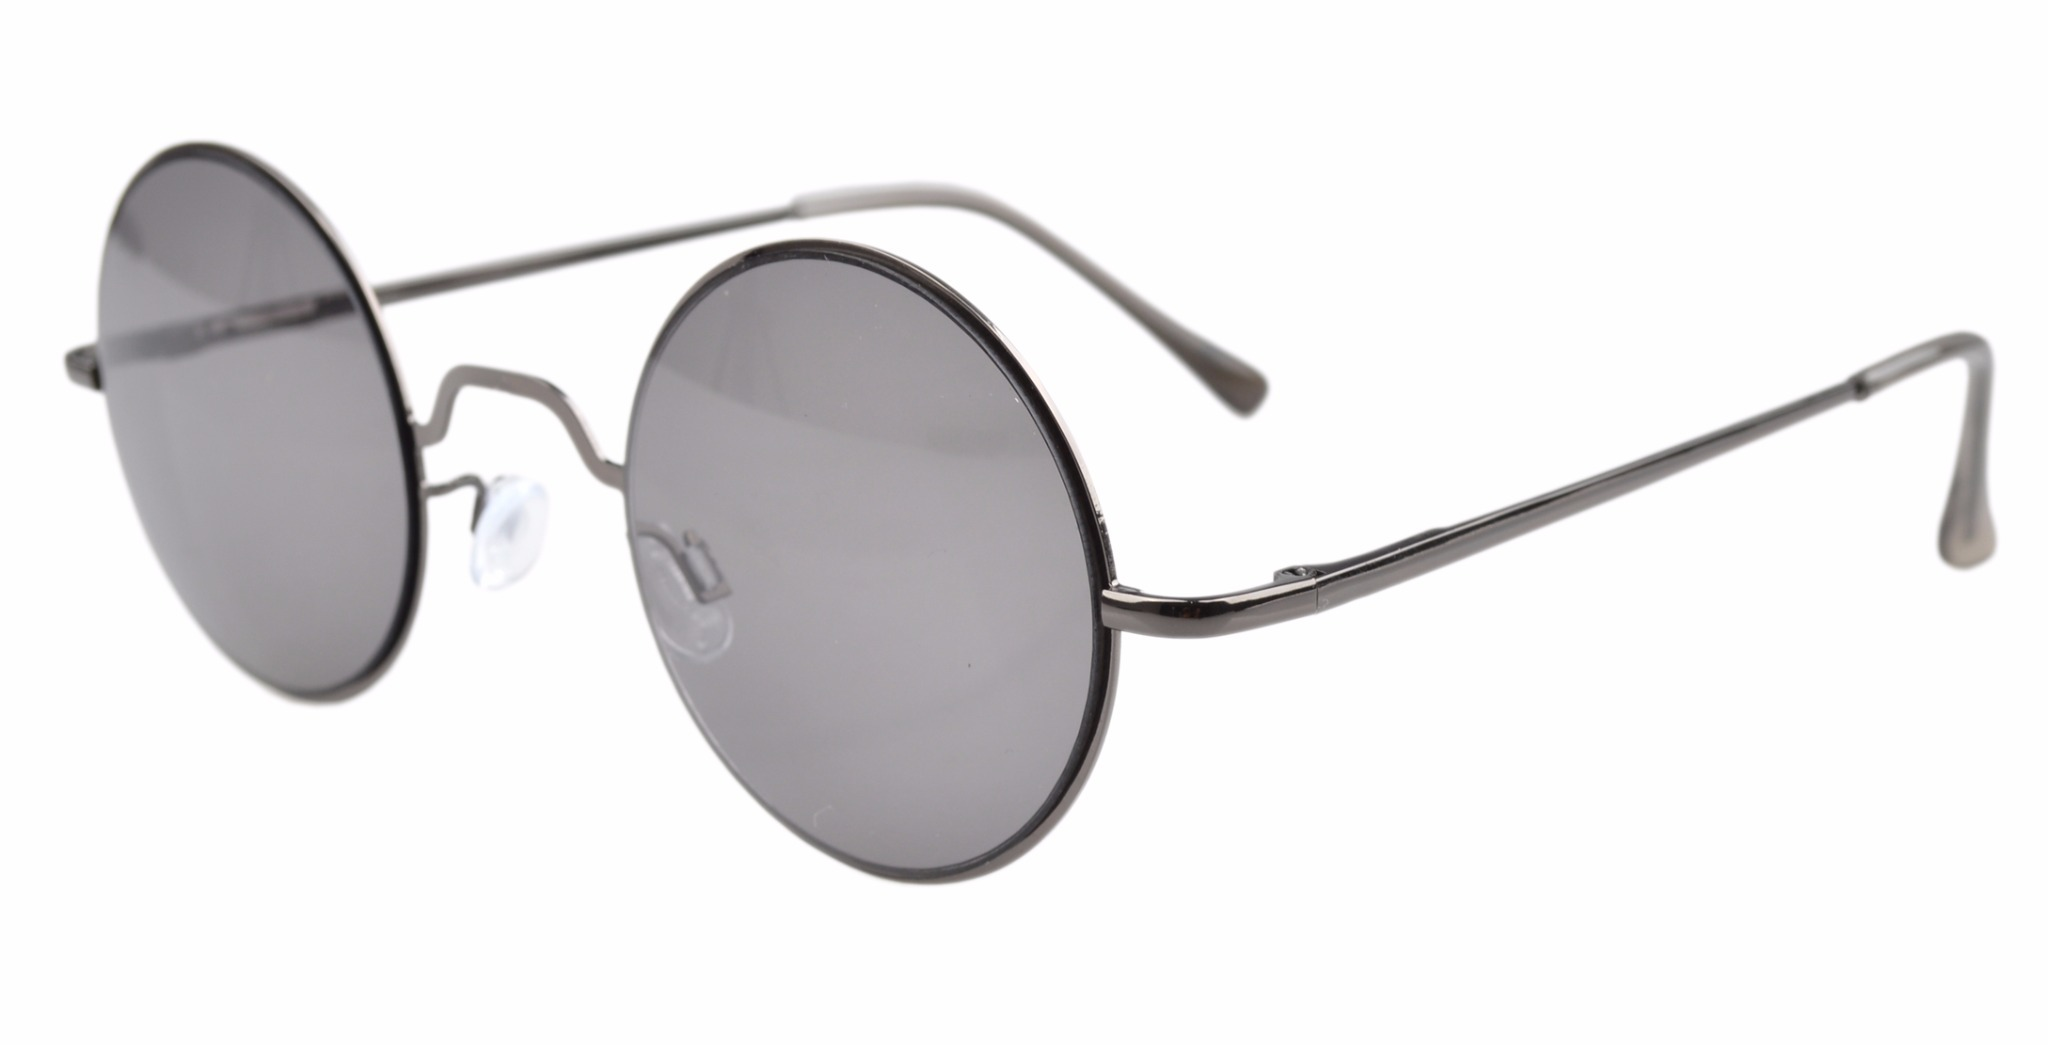 Eyekepper Spring Hinges Round Sunglasses R1503-Grey lens-0.0